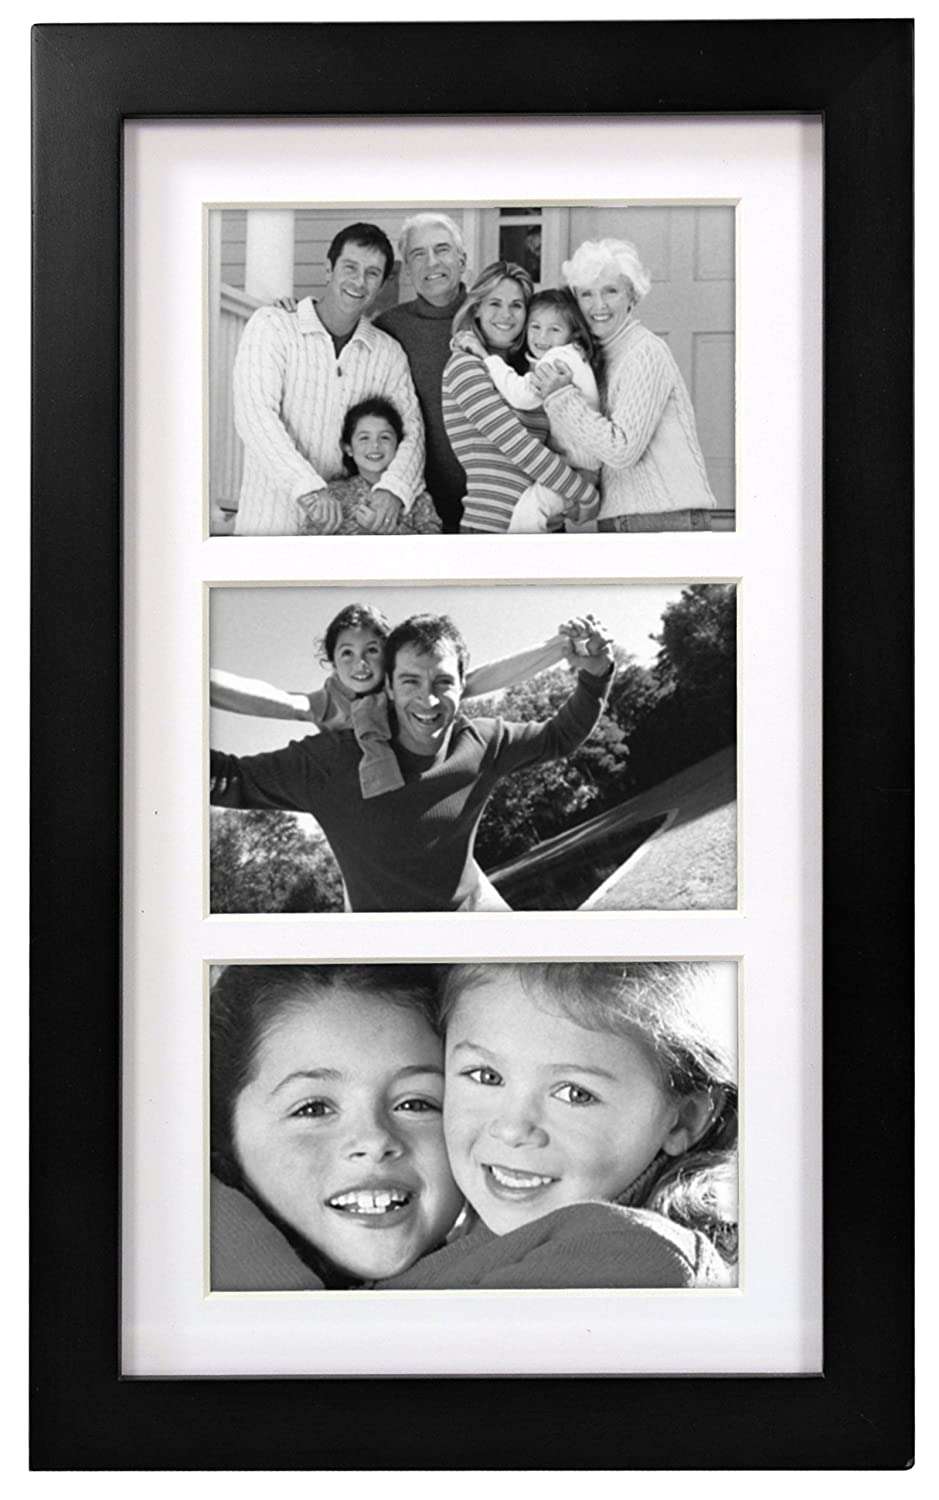 Amazon malden international designs matted linear classic amazon malden international designs matted linear classic wood picture frame black 4x6 inches 3op jeuxipadfo Images